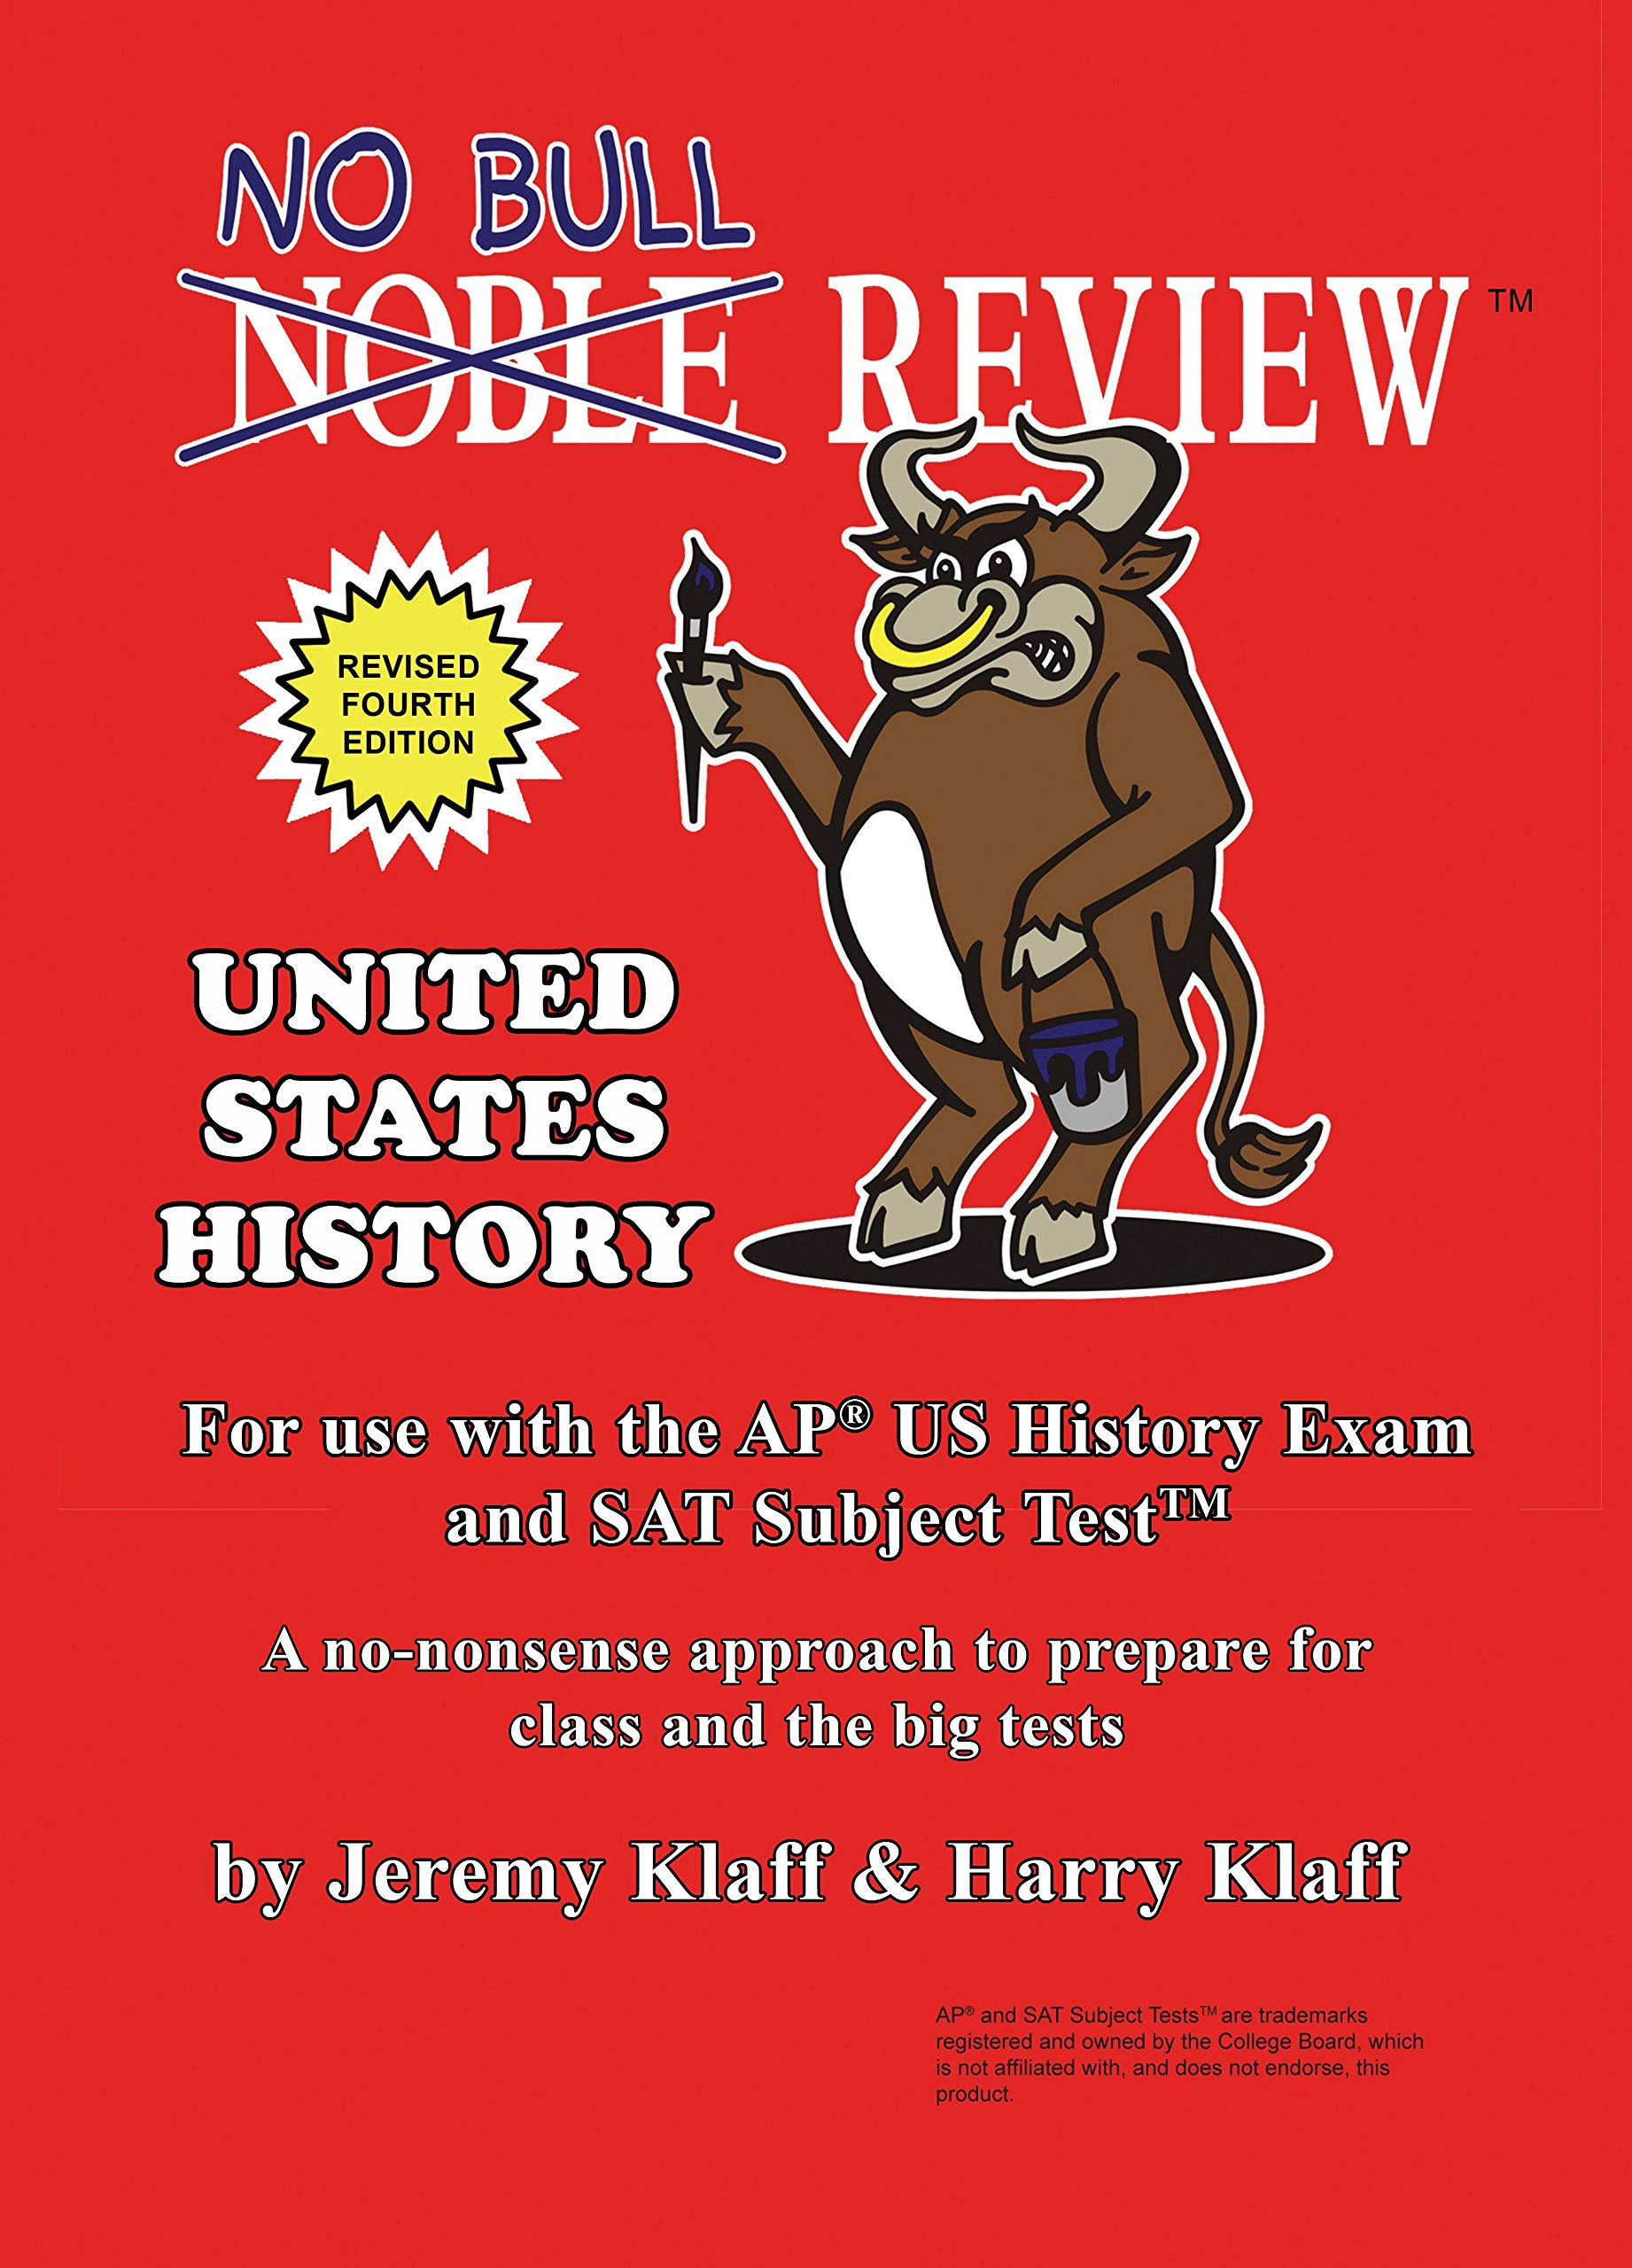 No Bull Review (2018 Edition) - For Use with the AP US History Exam and SAT Subject Test